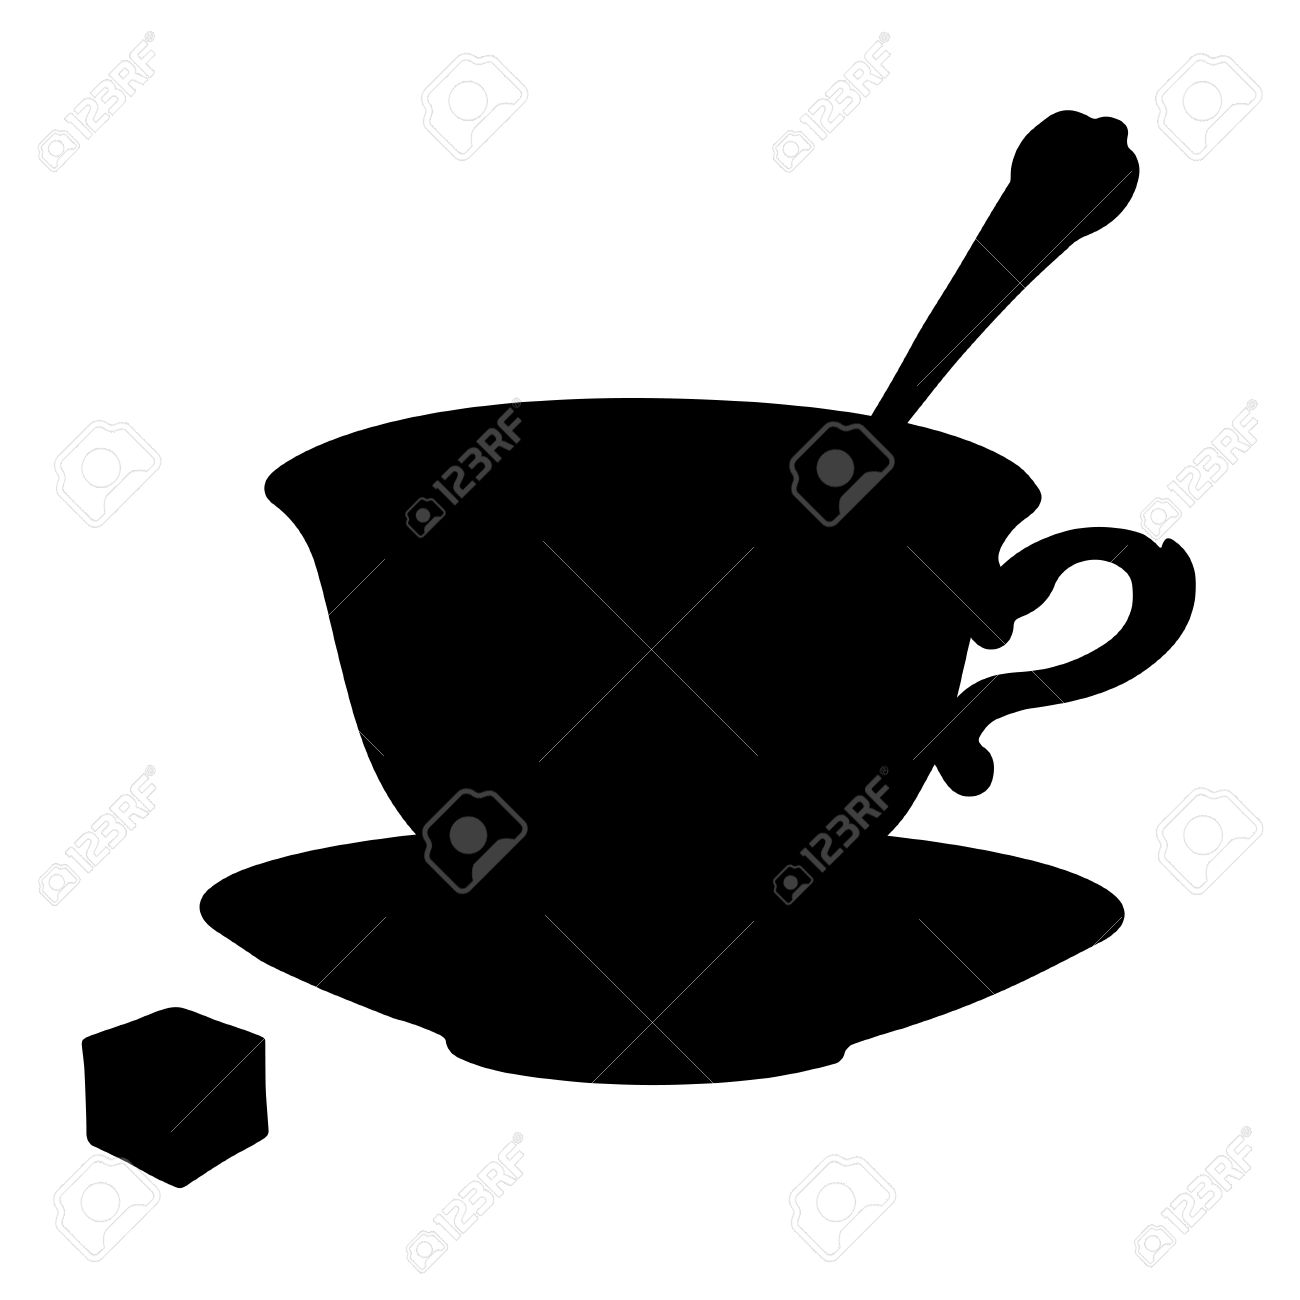 391 Demitasse Stock Illustrations, Cliparts And Royalty Free.